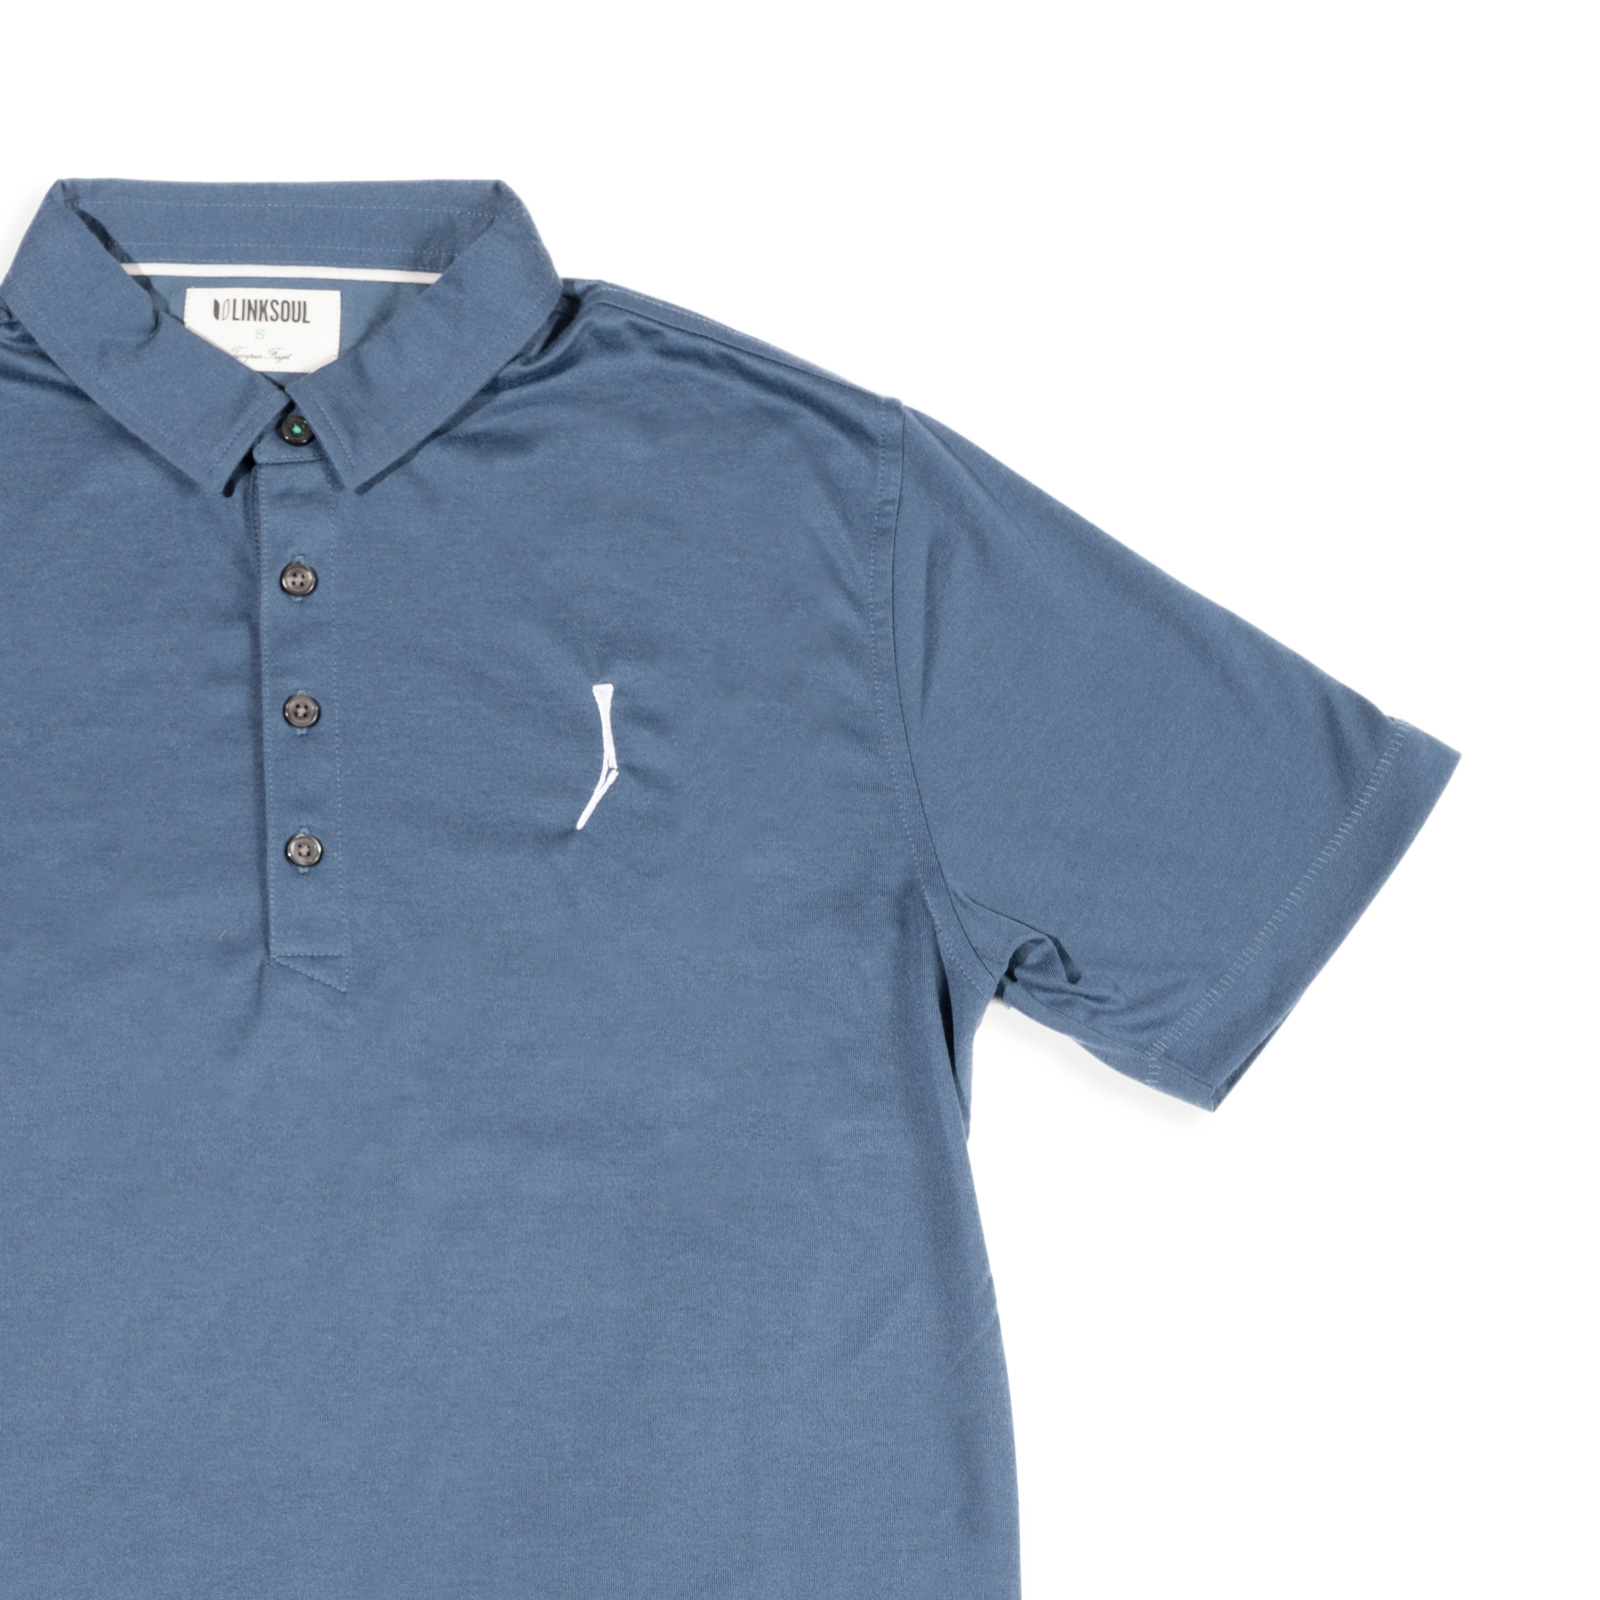 Men's Knit Drytech Polo – Eclipse